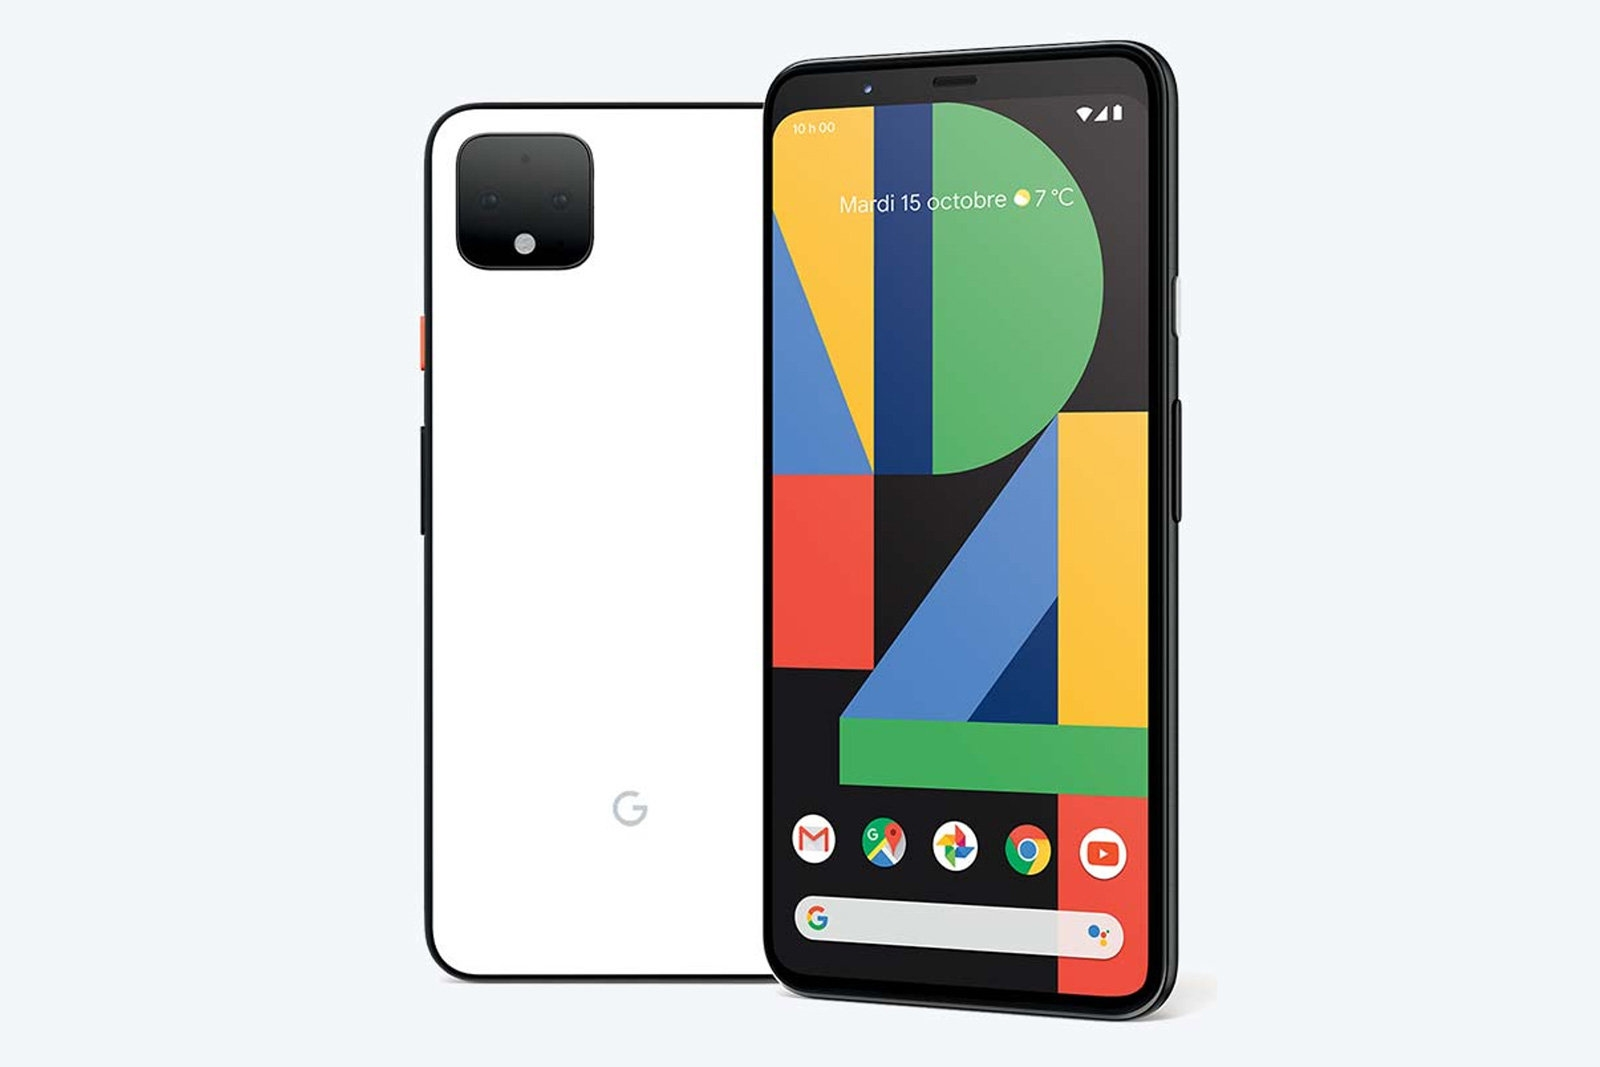 Pixel 4 pre-order at Best Buy Canada confirms key specs | DeviceDaily.com